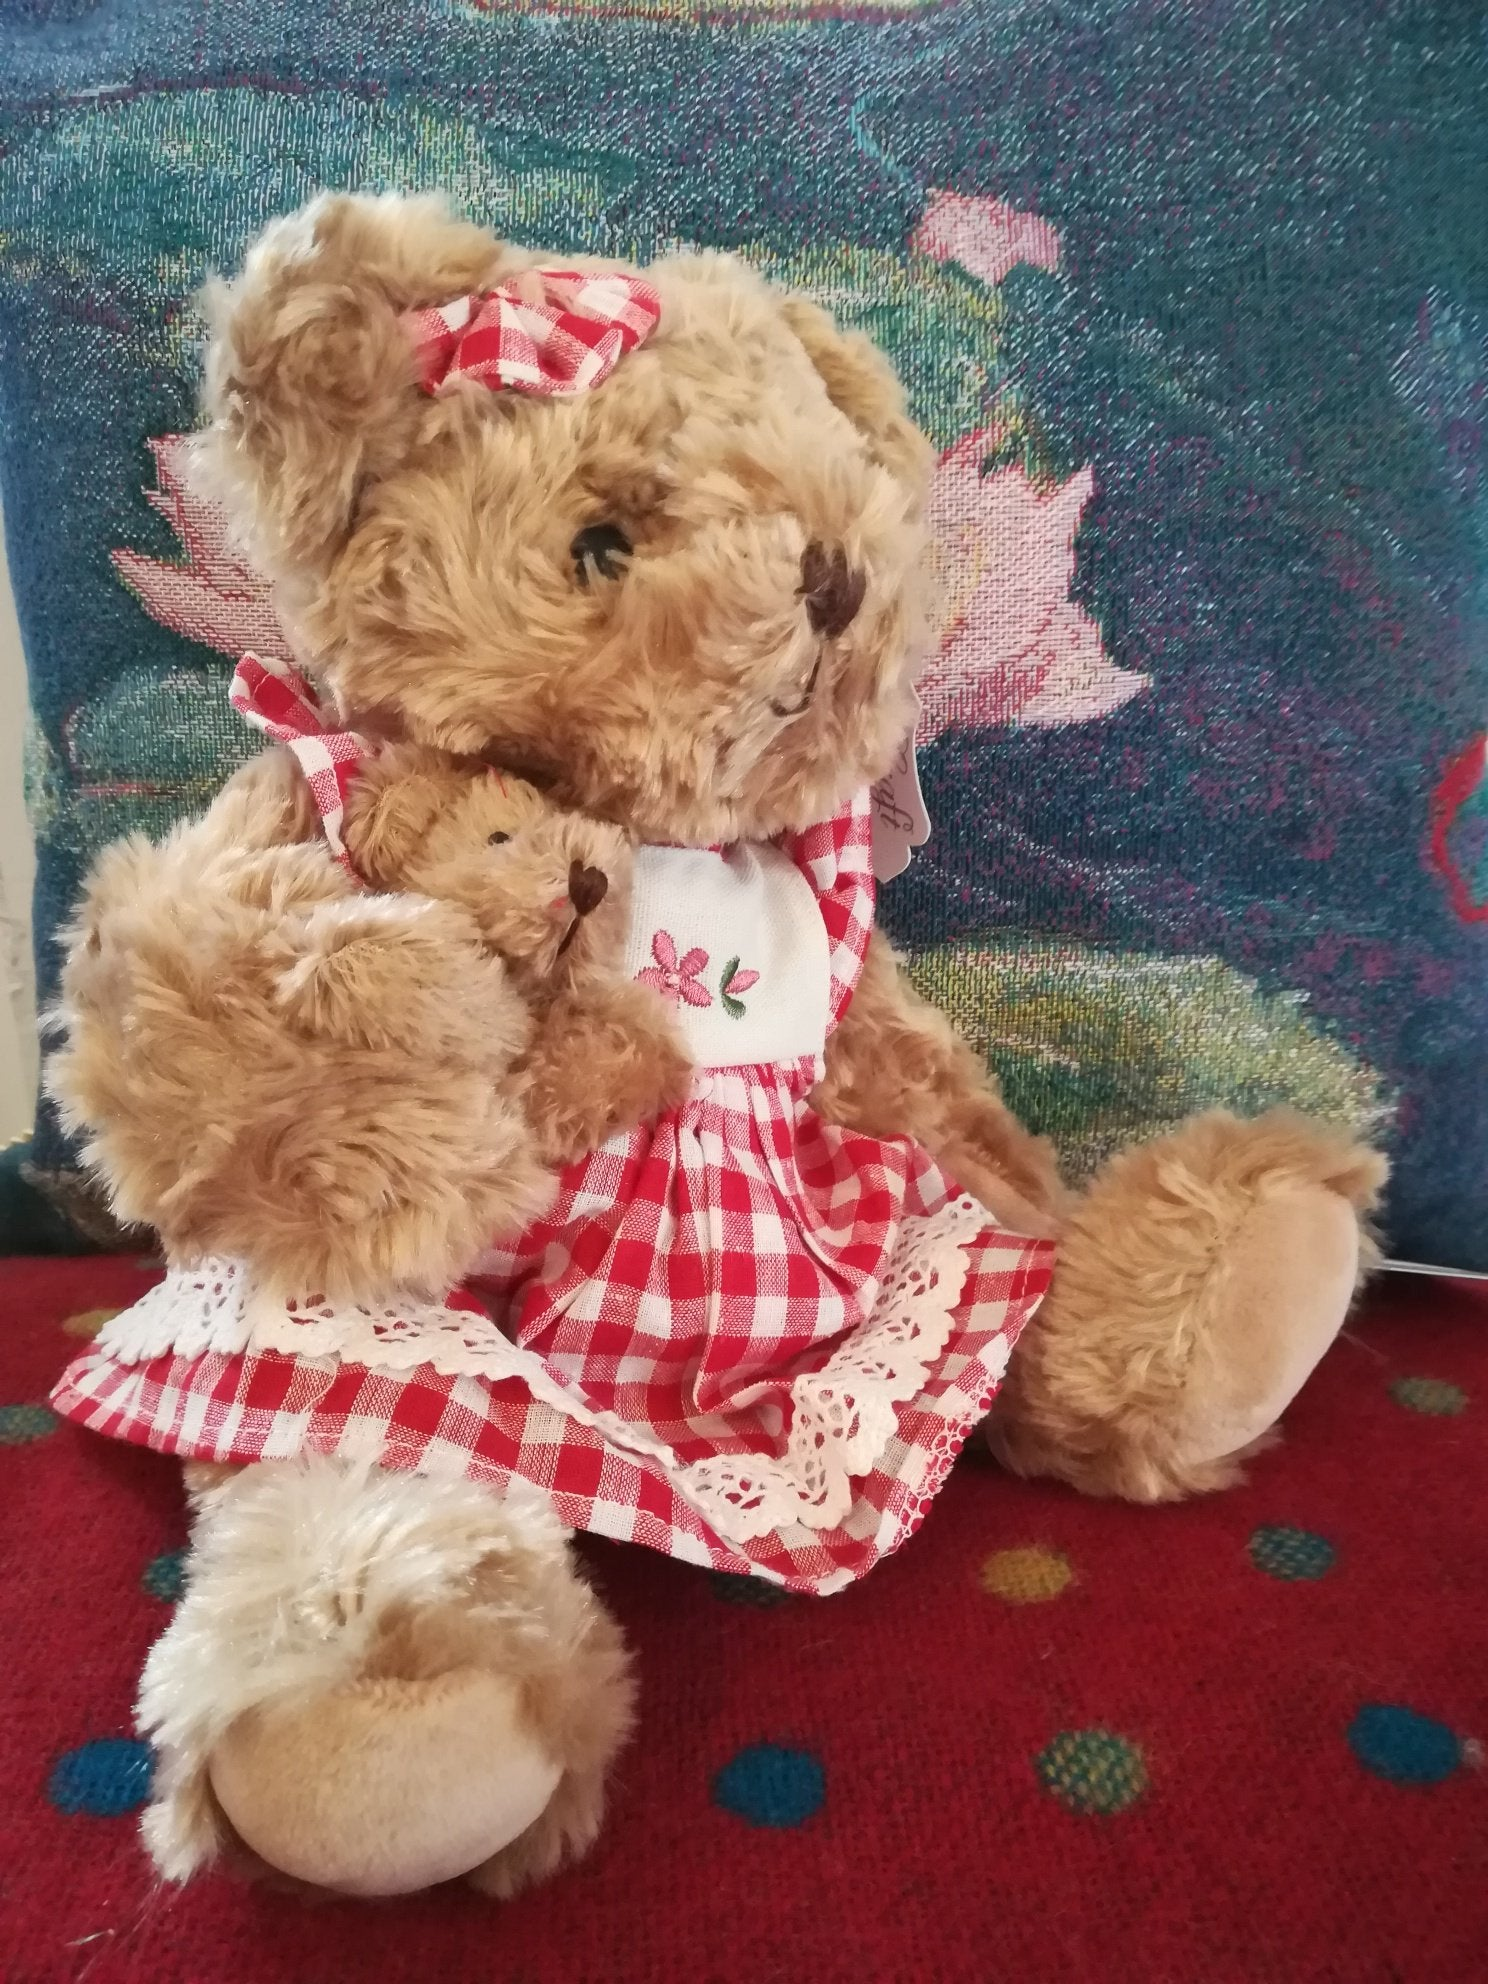 Teddy in red gingham dress